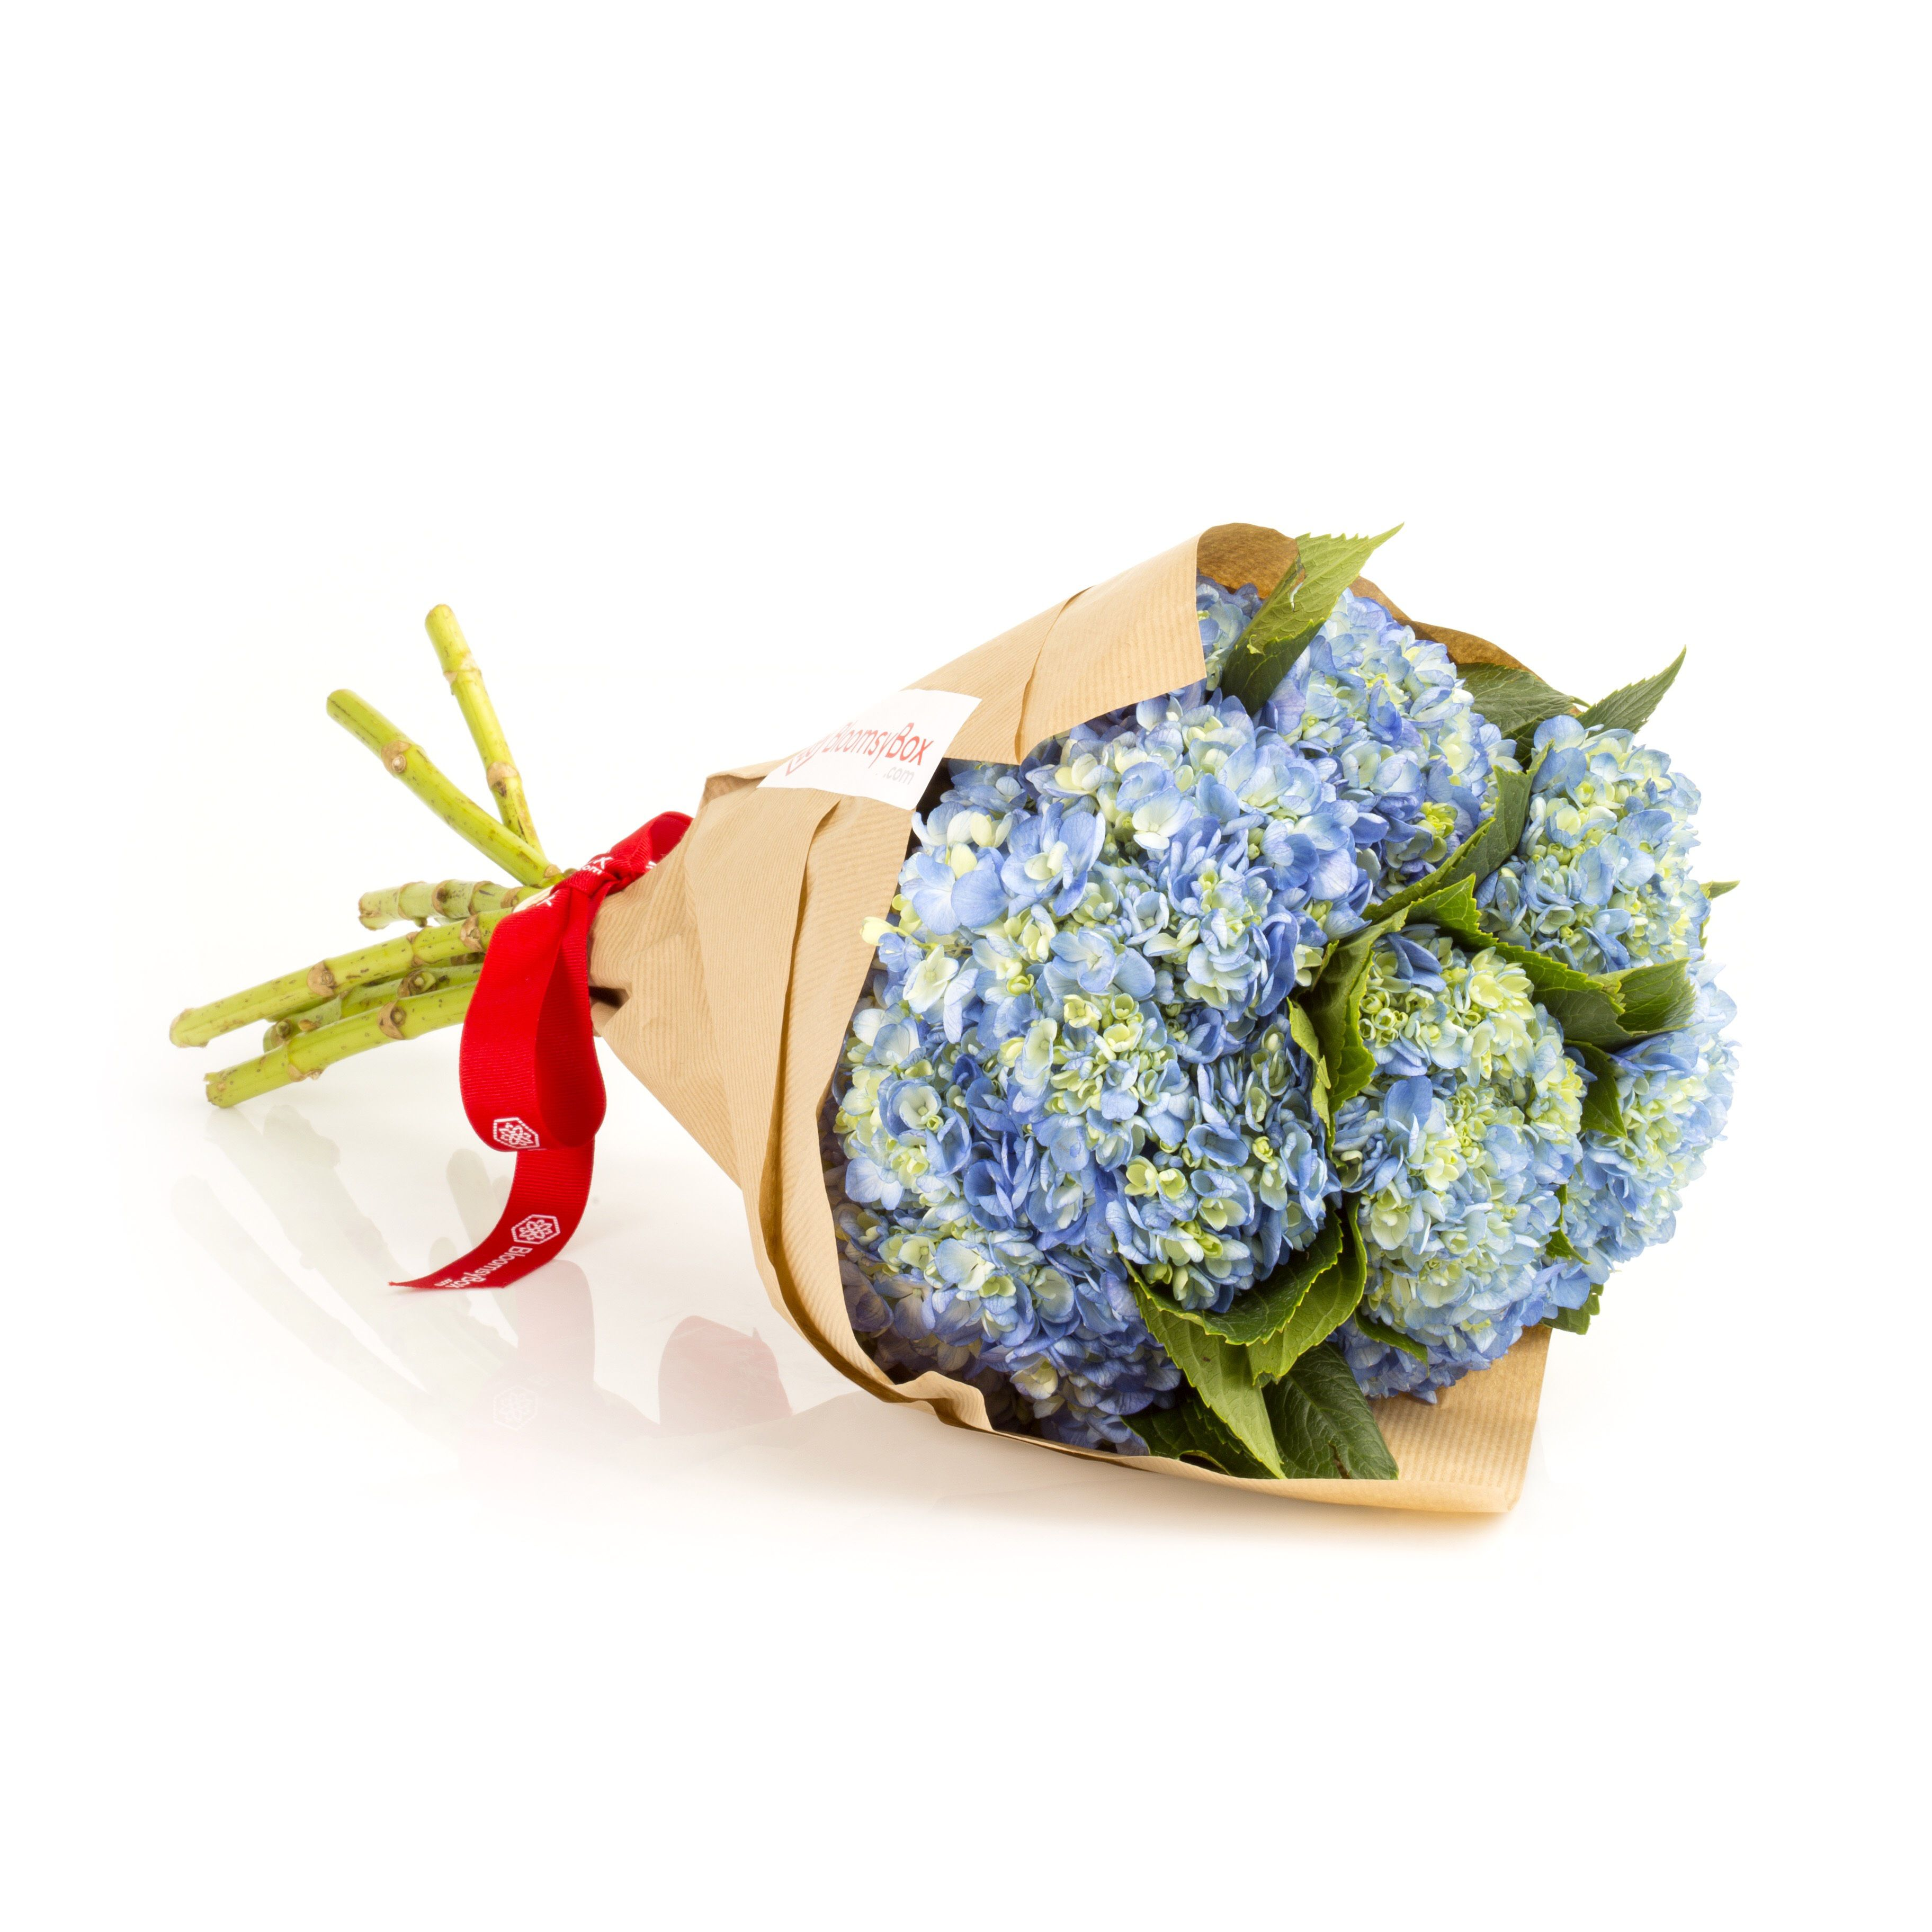 Best place to buy roses online-4725